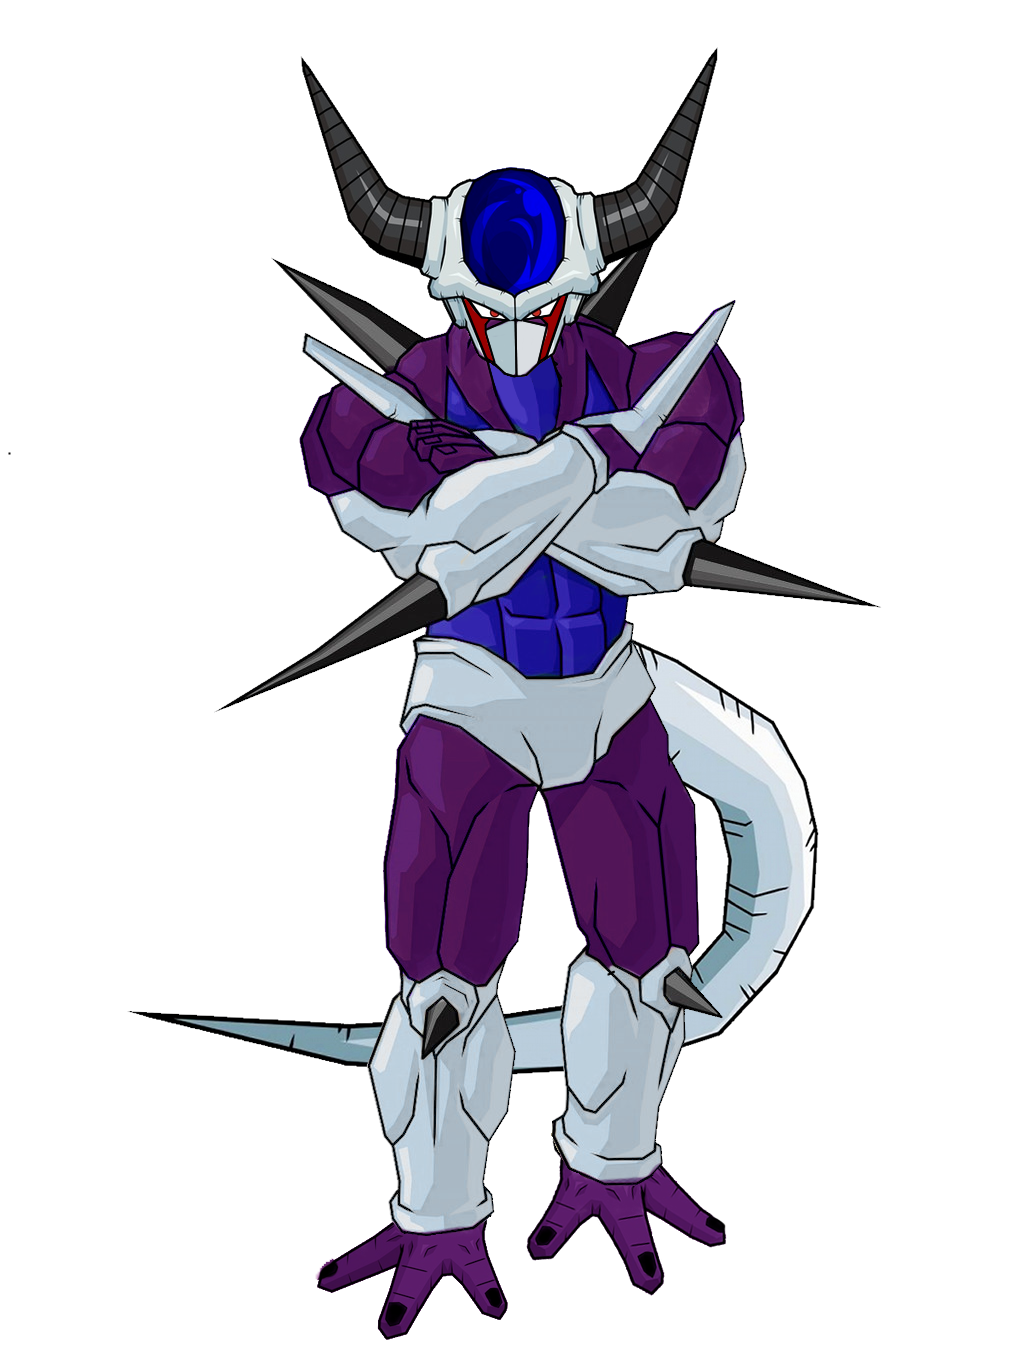 Cooler | DragonballNW Wiki | FANDOM powered by Wikia